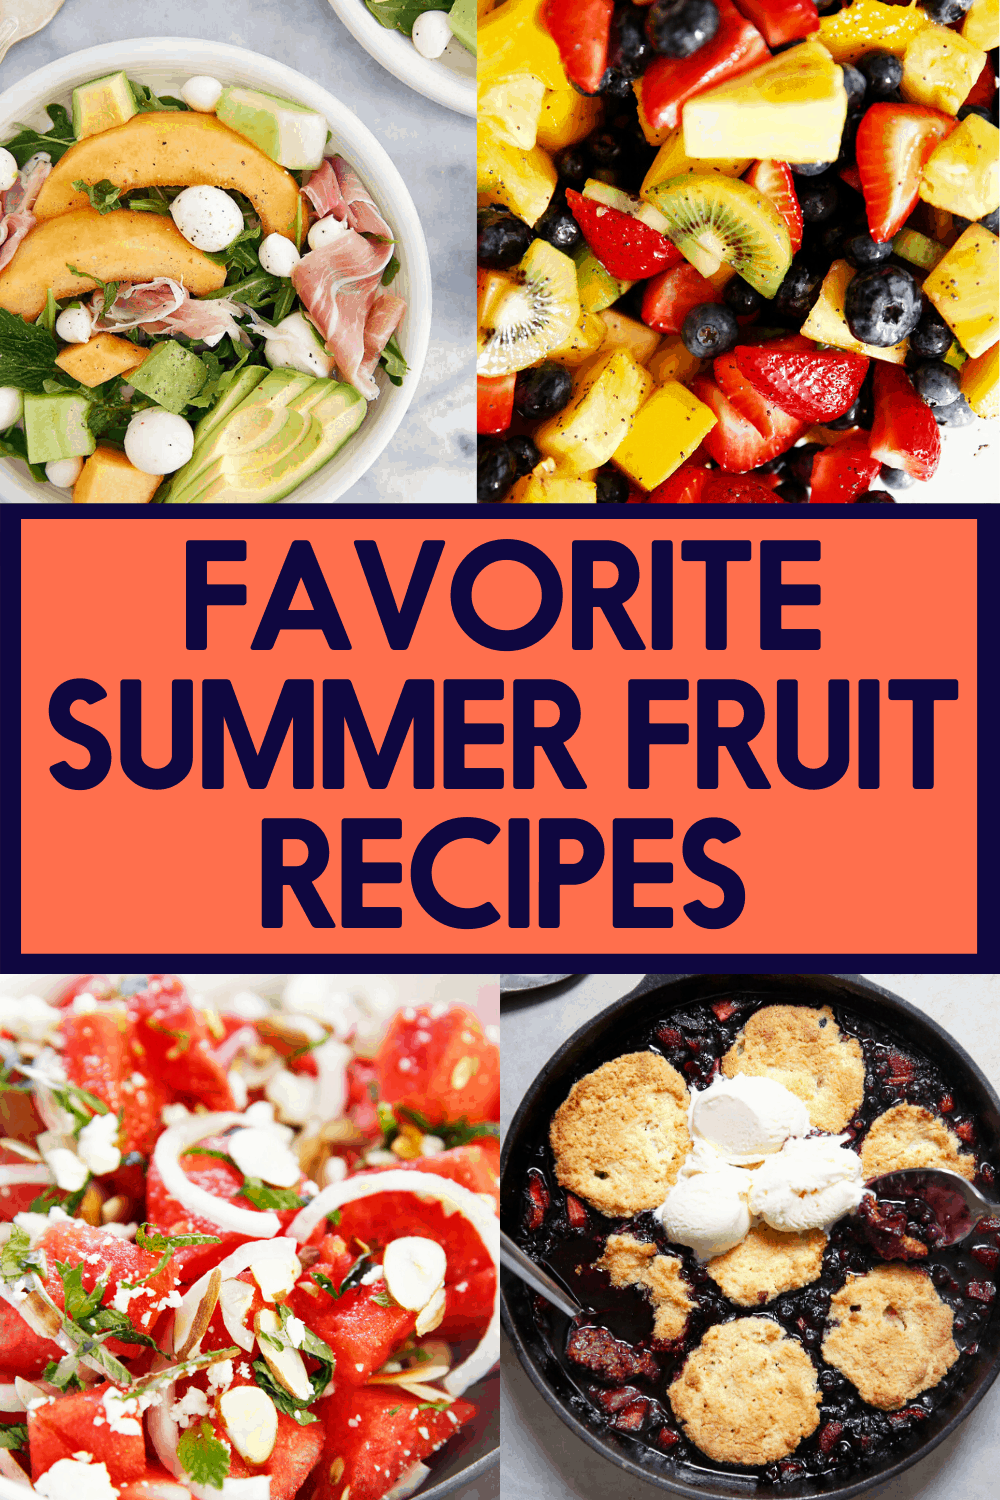 Fruit recipes to make this summer